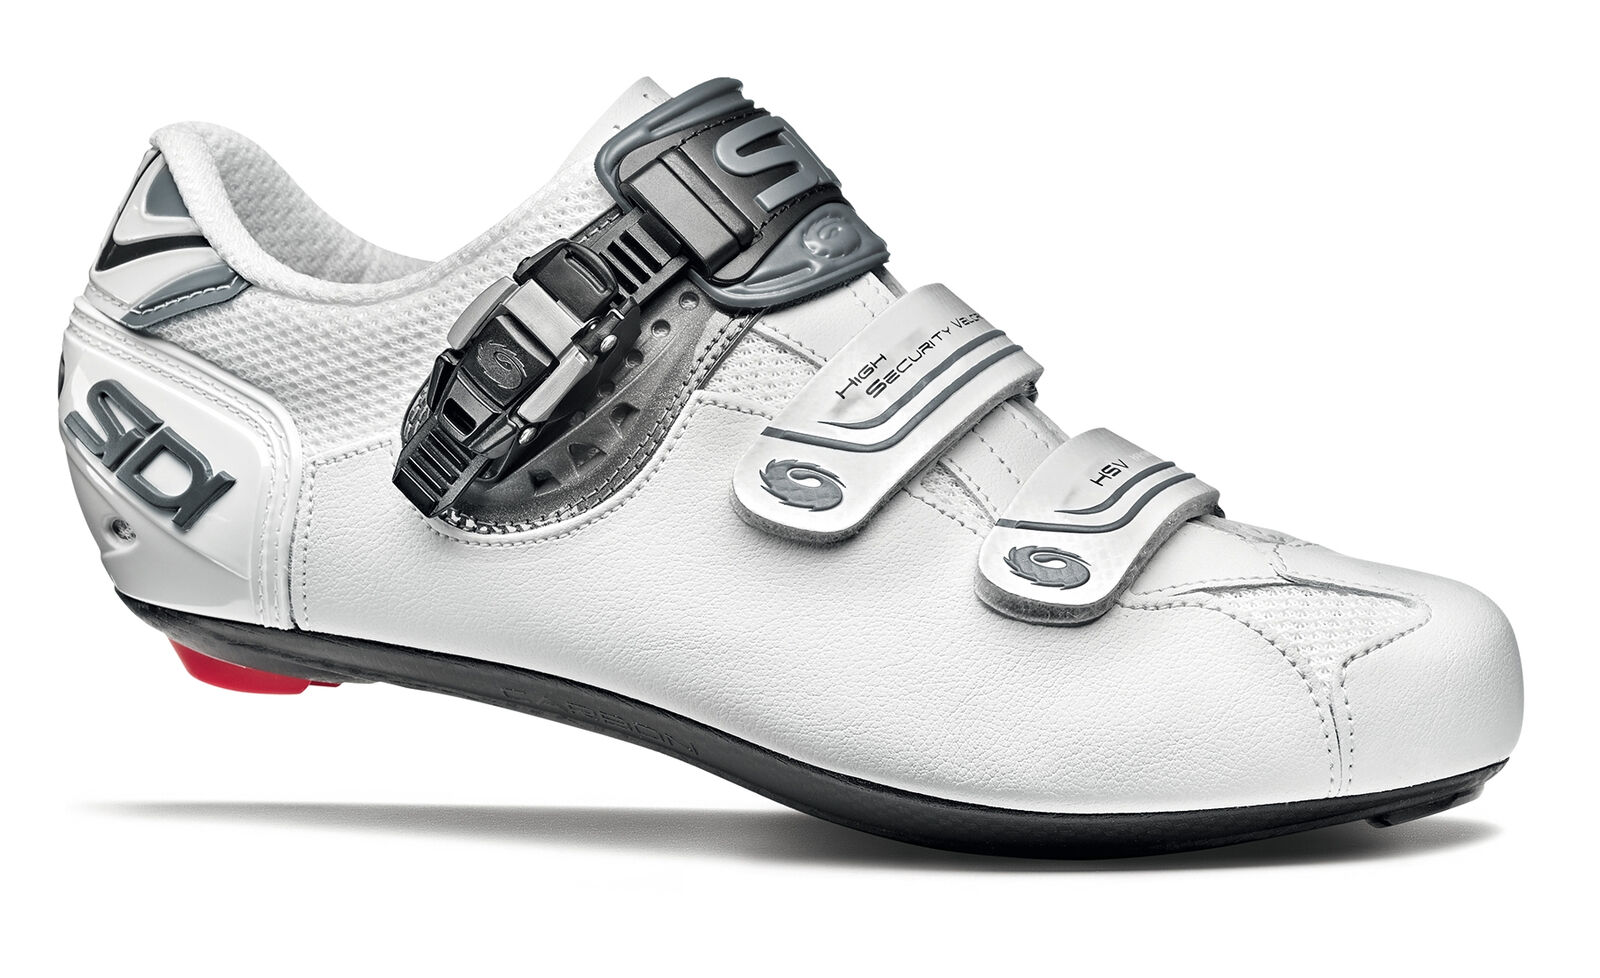 Sidi Men's Genius 7 Carbon  Cycling shoes  all goods are specials